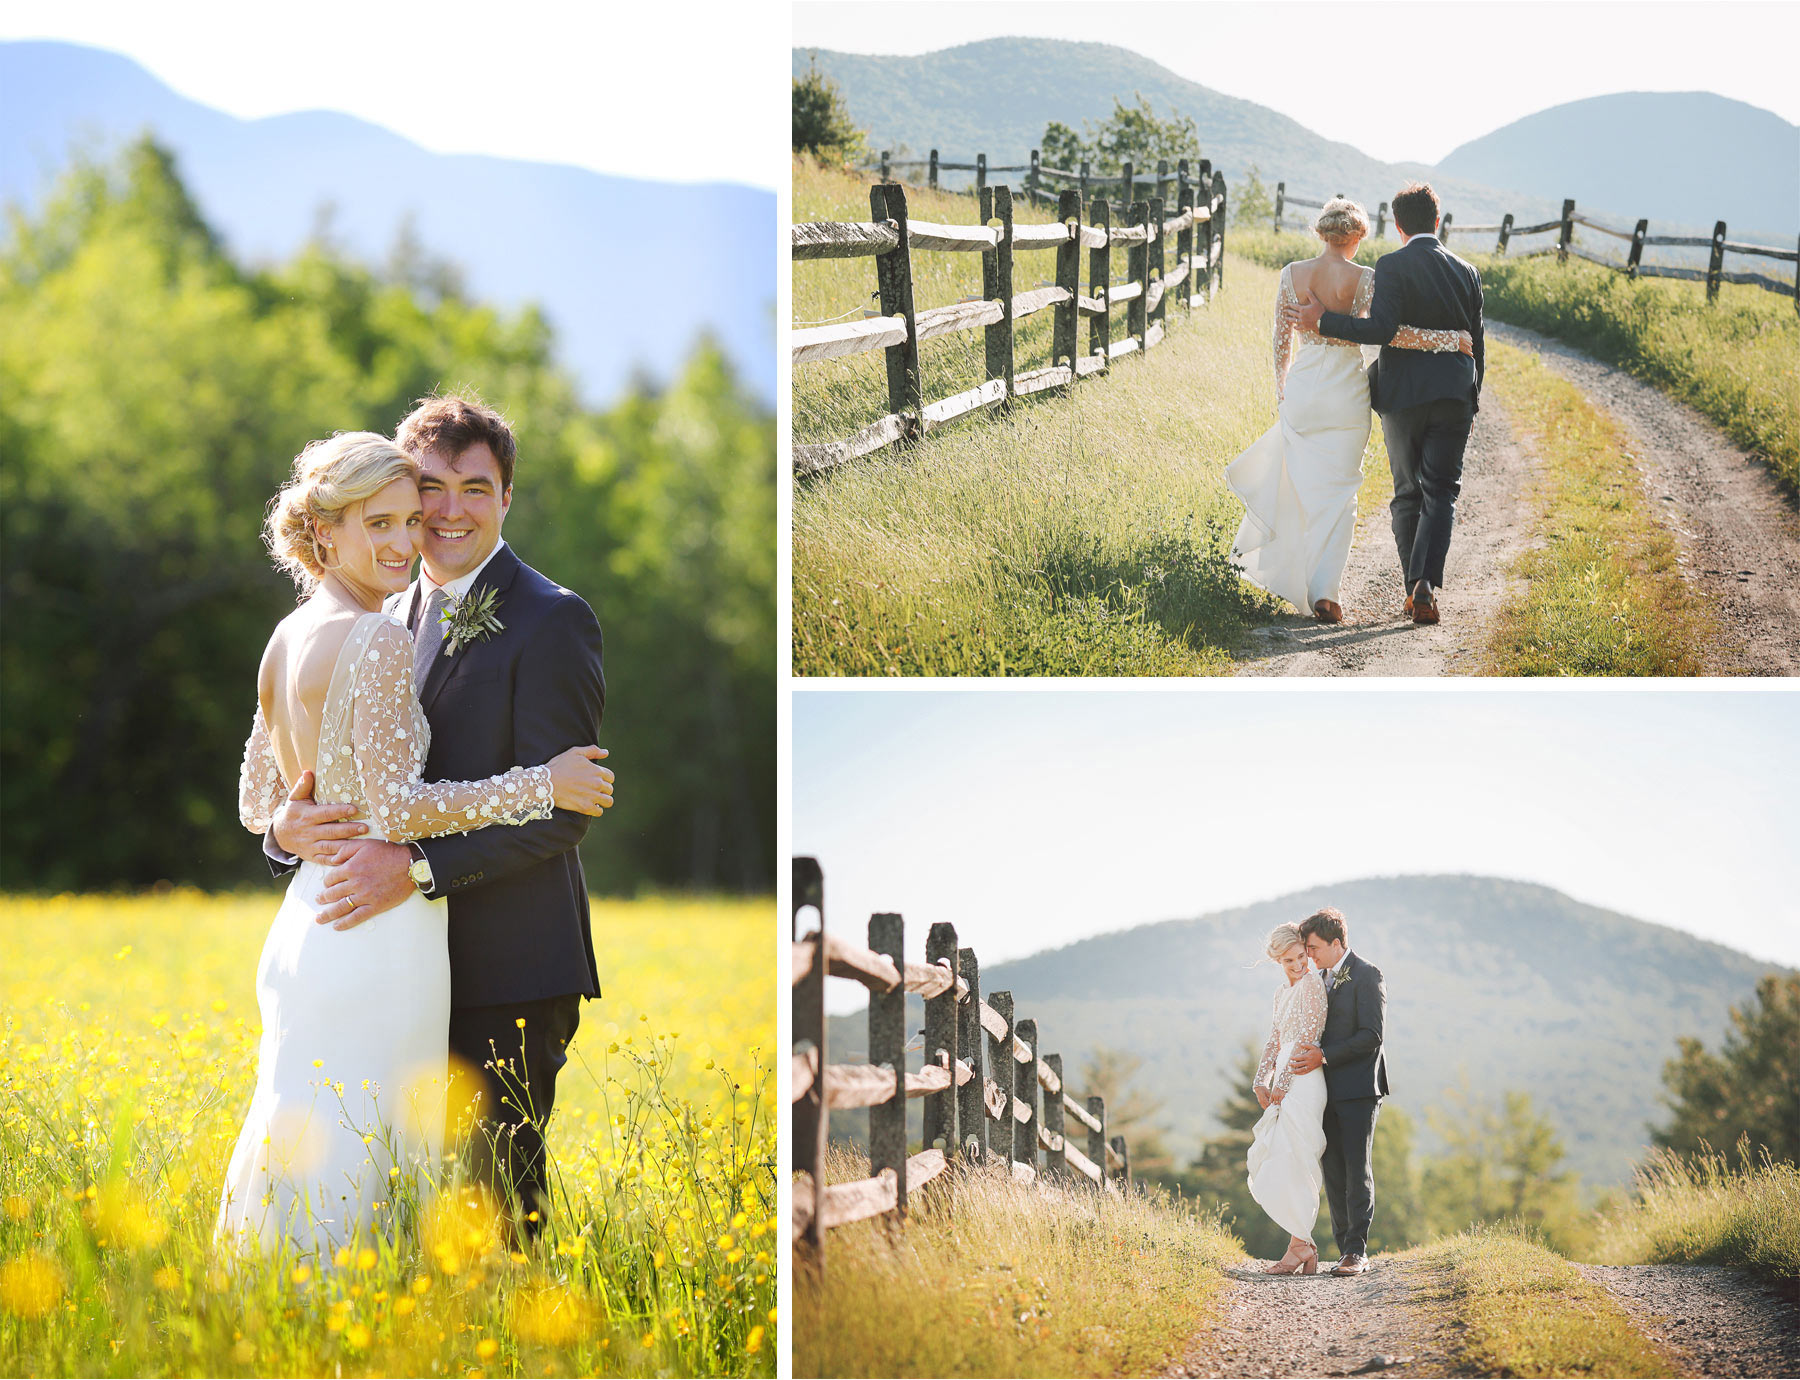 28-Stowe-Vermont-Wedding-Photography-by-Vick-Photography-Field-Sunset-Mackenzie-and-Jim.jpg